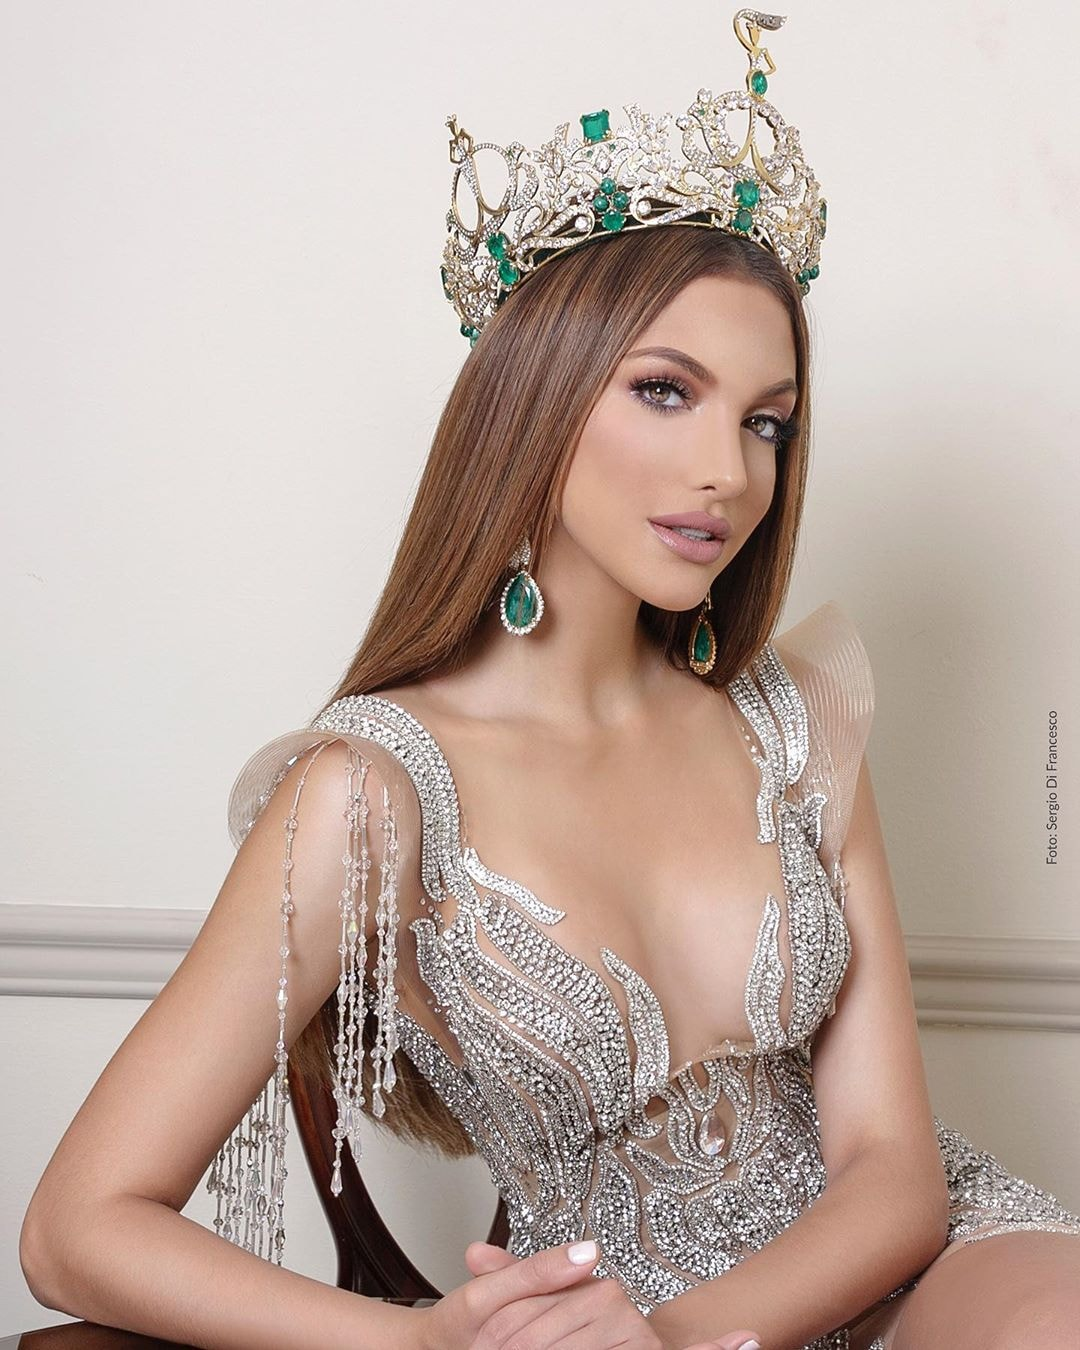 Official Thread of MISS GRAND INTERNATIONAL 2019 - Lourdes Valentina Figuera - VENEZUELA - Page 2 72184707-2632537956769184-8293369277759619072-o